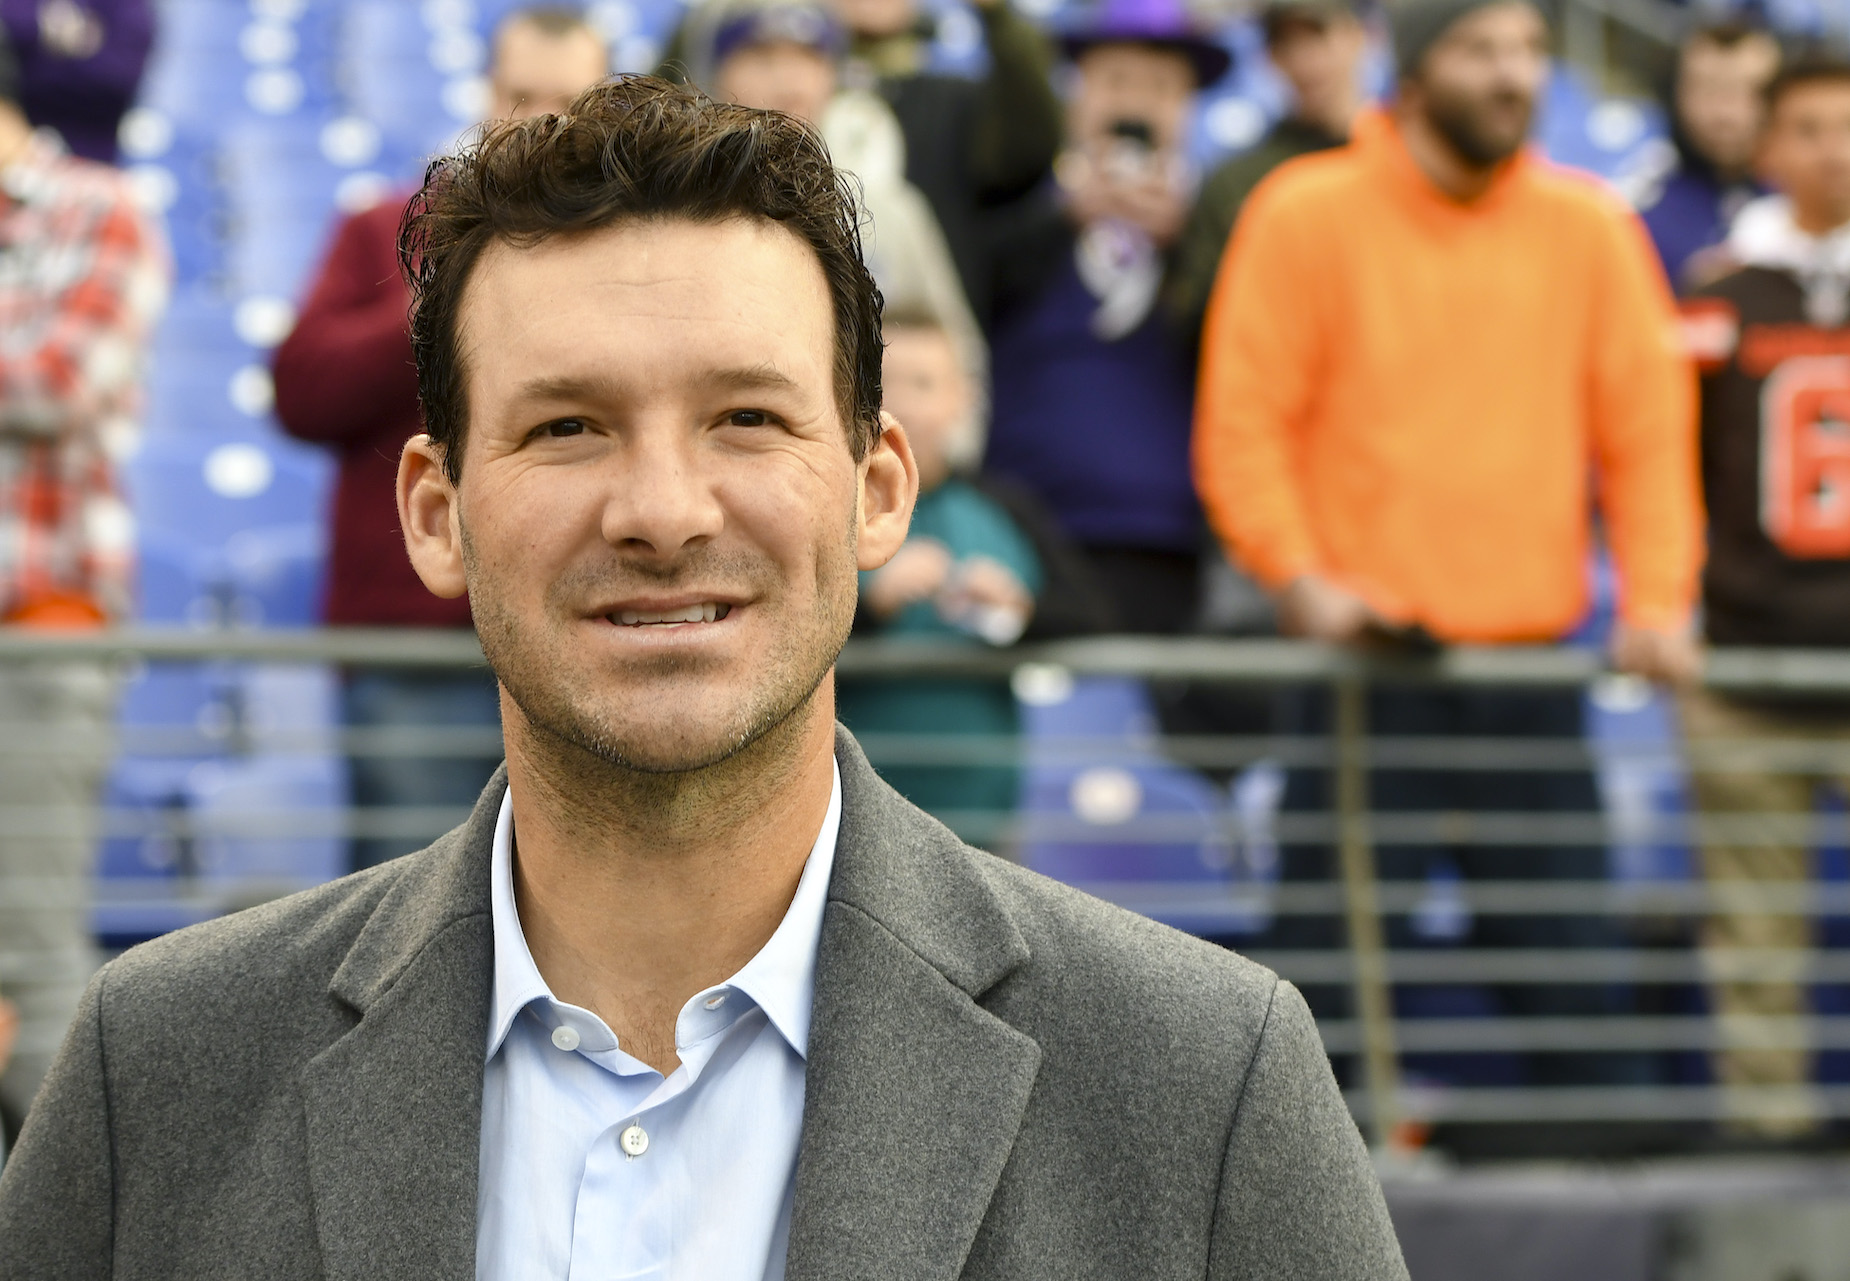 Tony Romo Revealed That He Changed a Signature Part of His Broadcasting Skill Set During the 2020 NFL Season